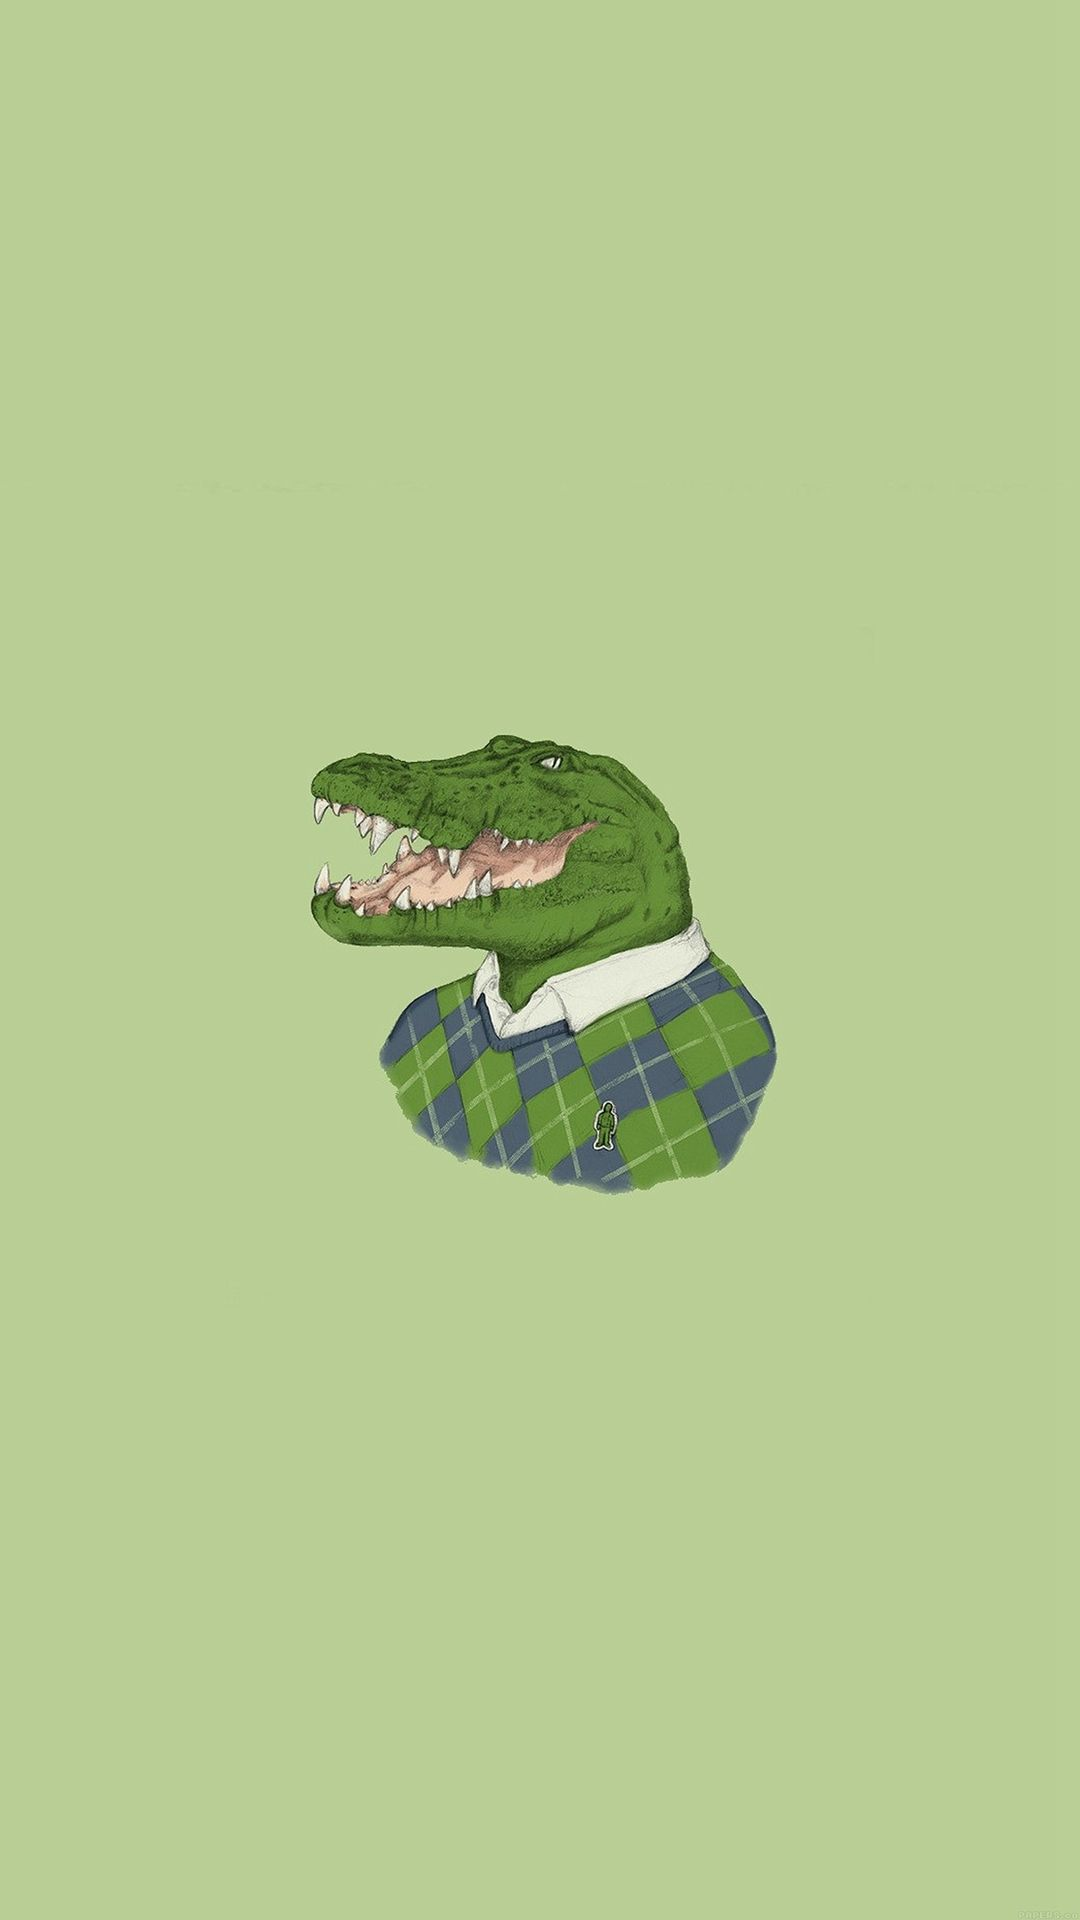 lacoste shoes gold croc backgrounds tumblr dope